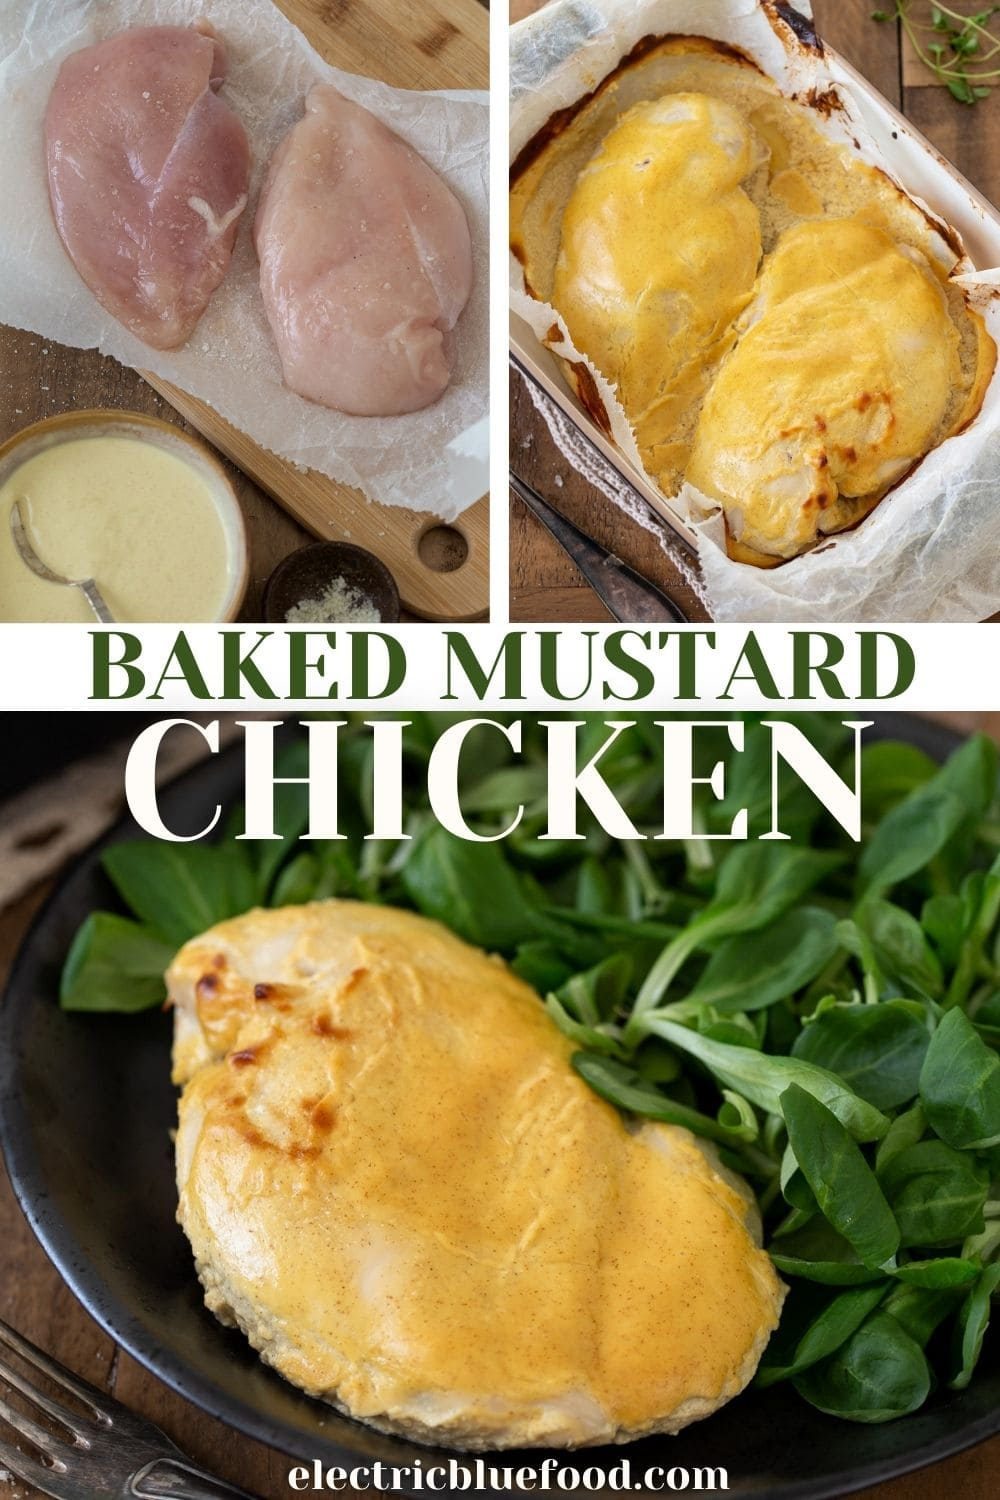 Easy baked mustard chicken breasts are an easy midweek dinner that requires only 2 minutes hand-on and just over a half hour of oven time.